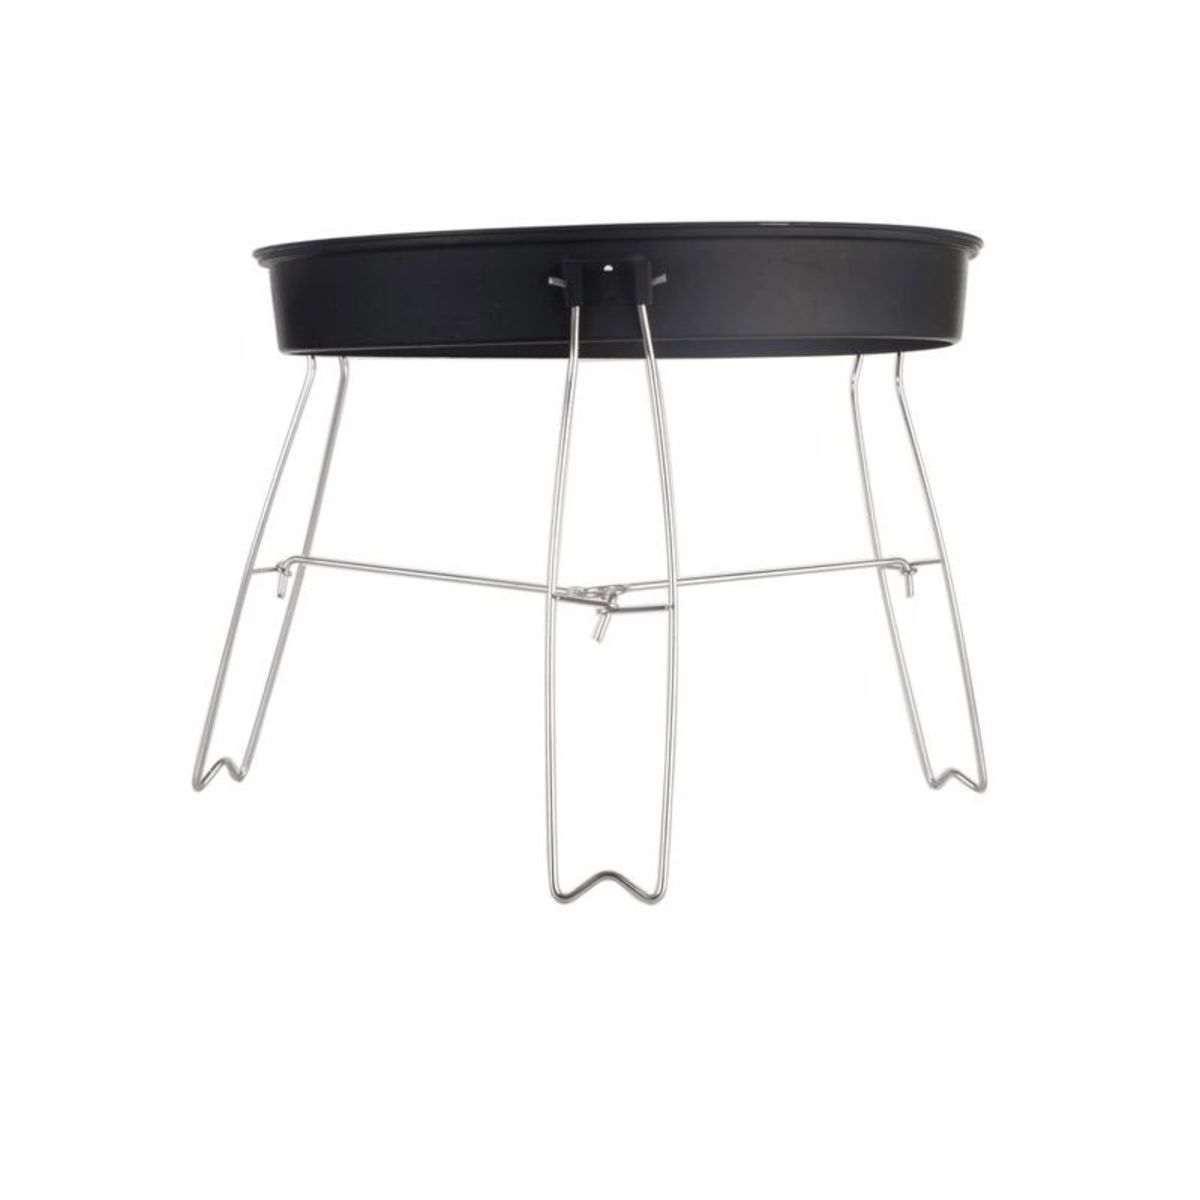 Image of Relags Pop Up Grill